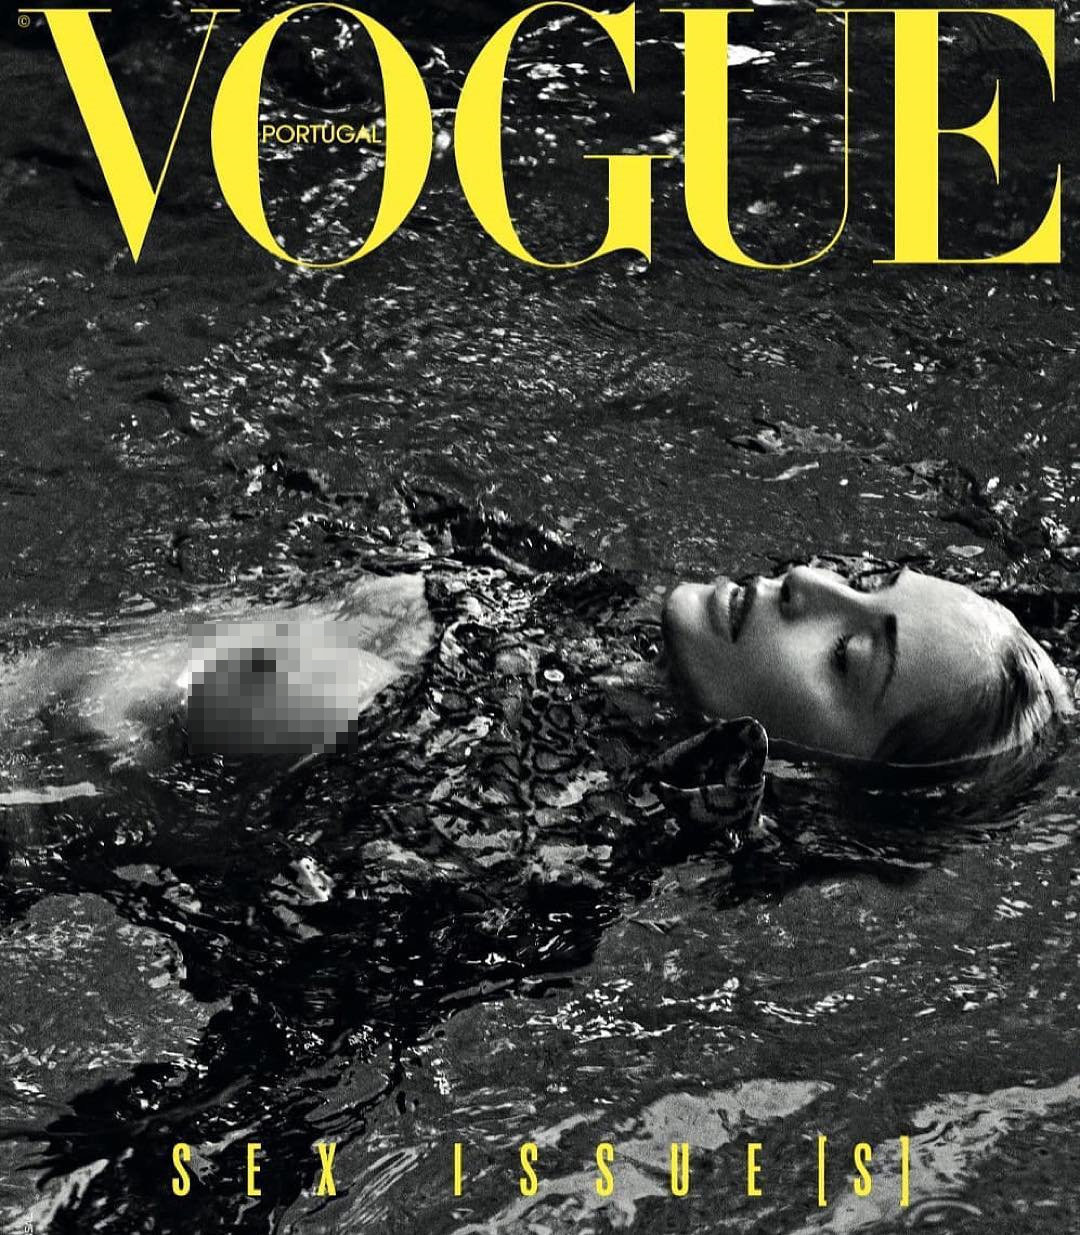 Sharon Stone participa na sessão de fotos para a revista Vogue Portugal